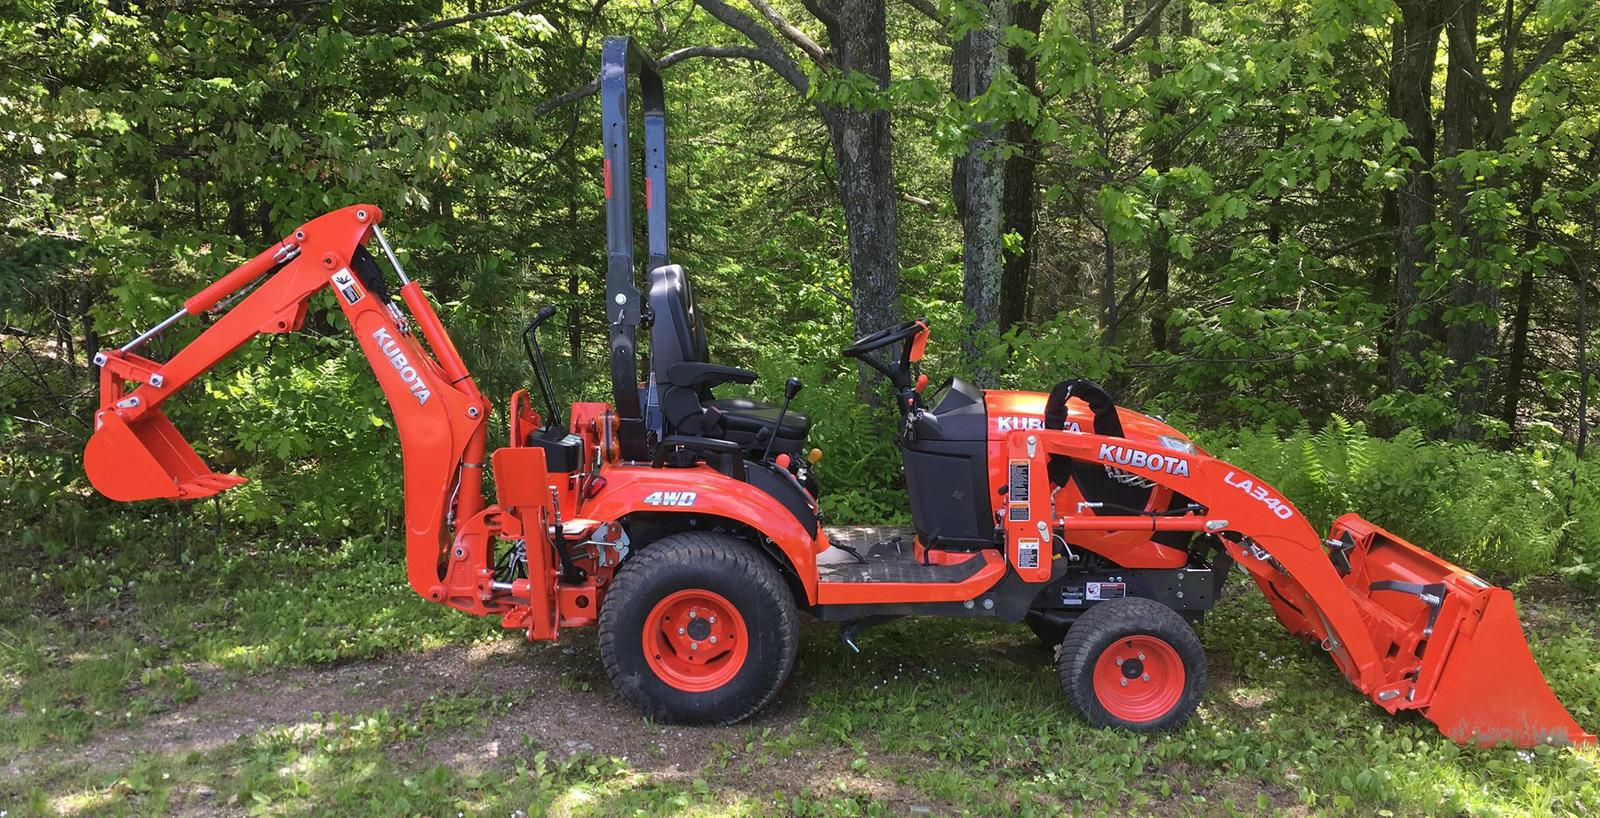 Agricultural Tractors from Kubota Wallingford Equipment